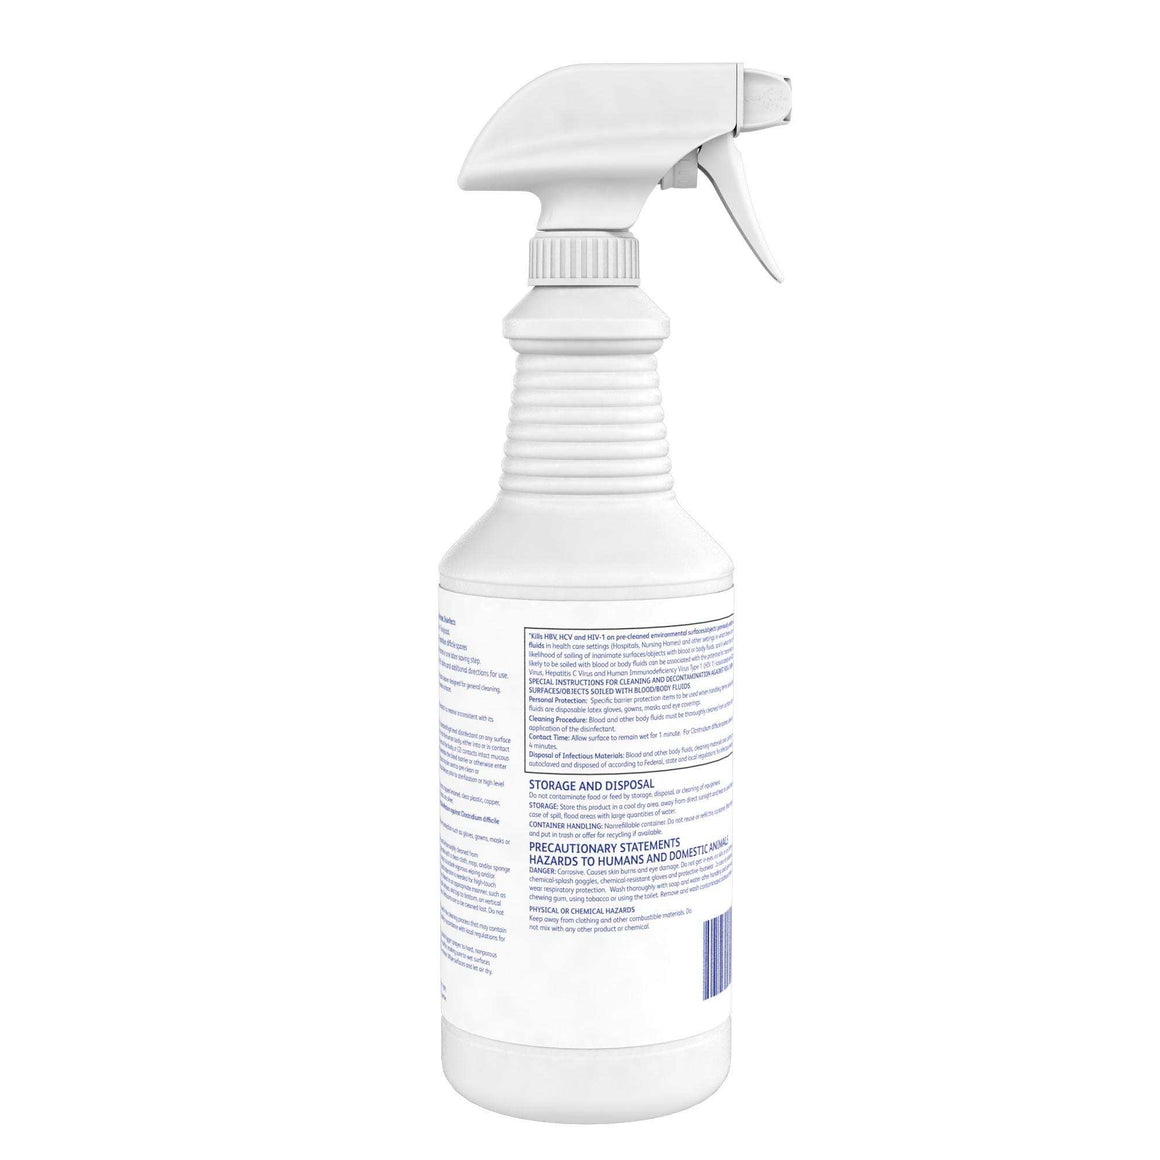 Avert Disinfectant Sporicidal Spray, 32oz - Medical Grade